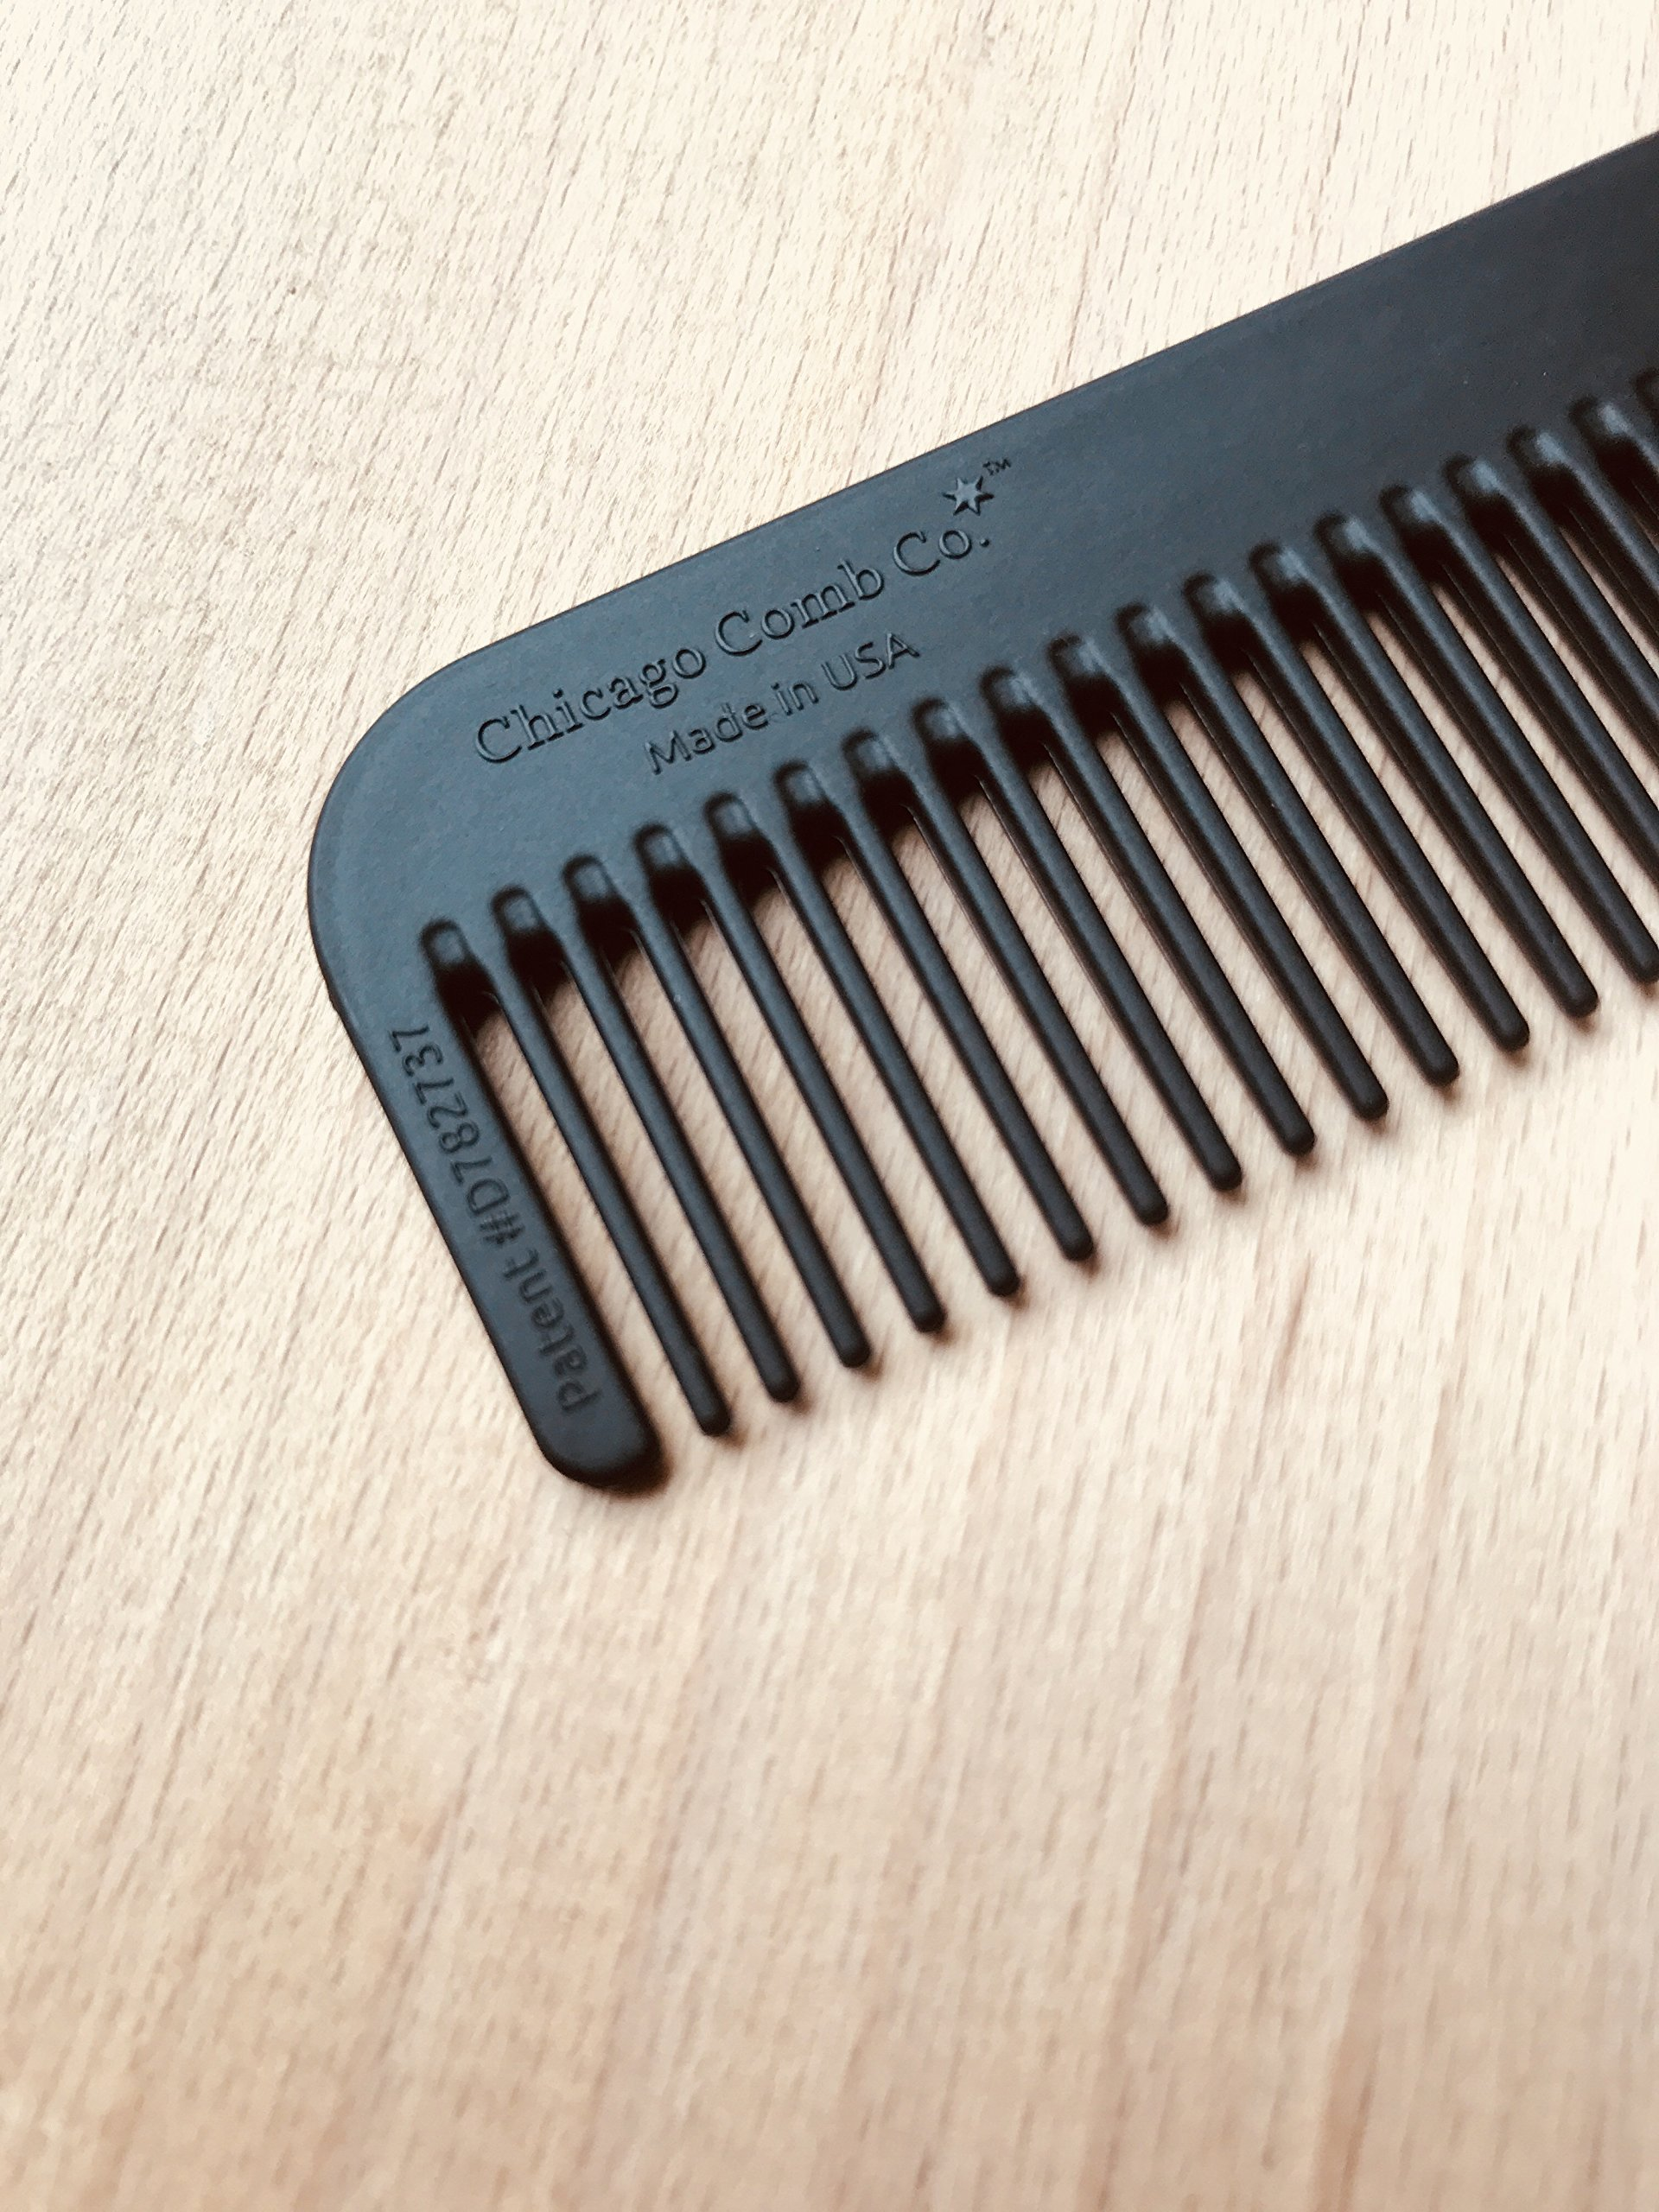 Chicago Comb Model 1 Carbon Fiber, Made in USA, ultra smooth, strong, and light, anti-static, heat-resistant, 5.5 inches (14 cm) long, ultimate daily use, pocket, and travel comb by Chicago Comb (Image #4)